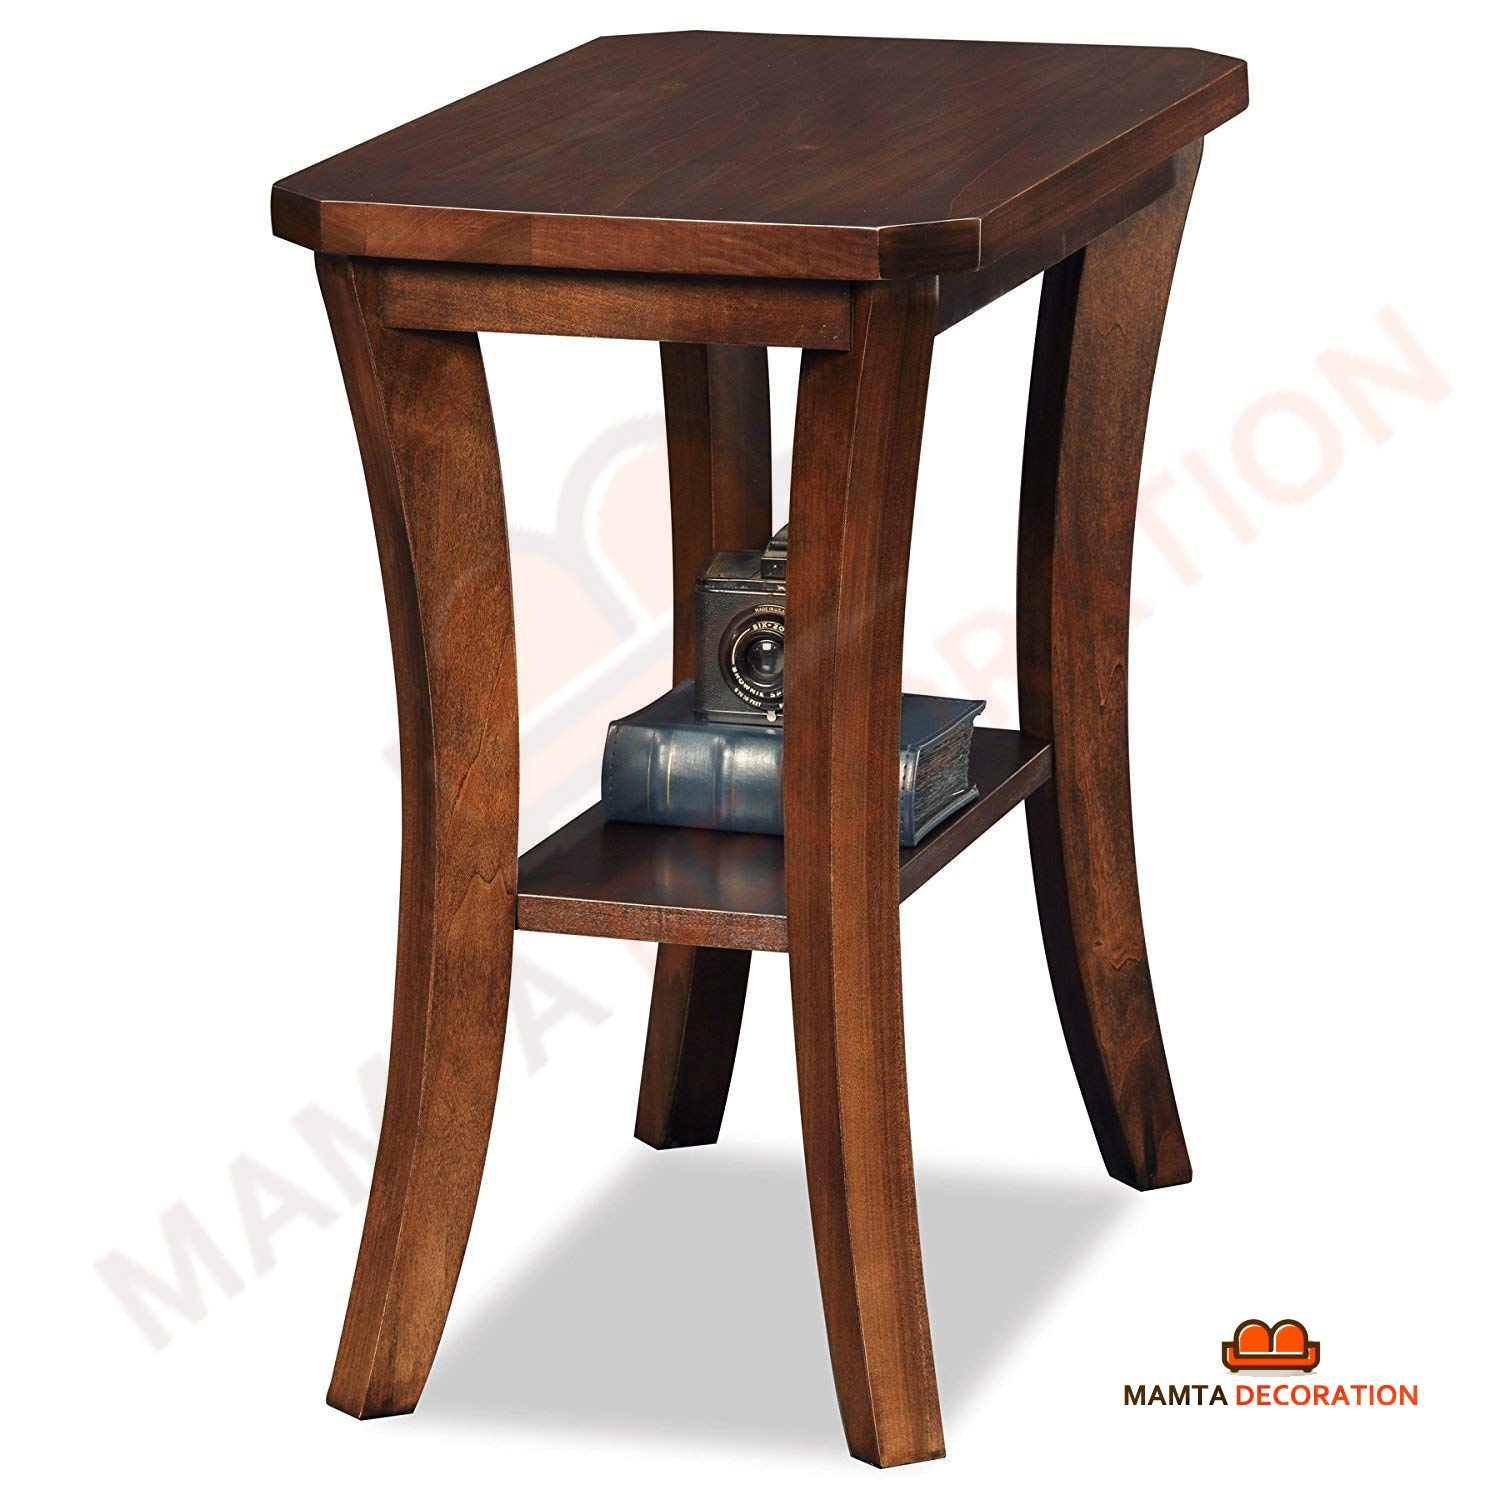 mamta decoration rosewood sheesham wood side end table chocolate brown tables cherry finish electronics living room furniture columbus small oval black couch coffee fold out tall